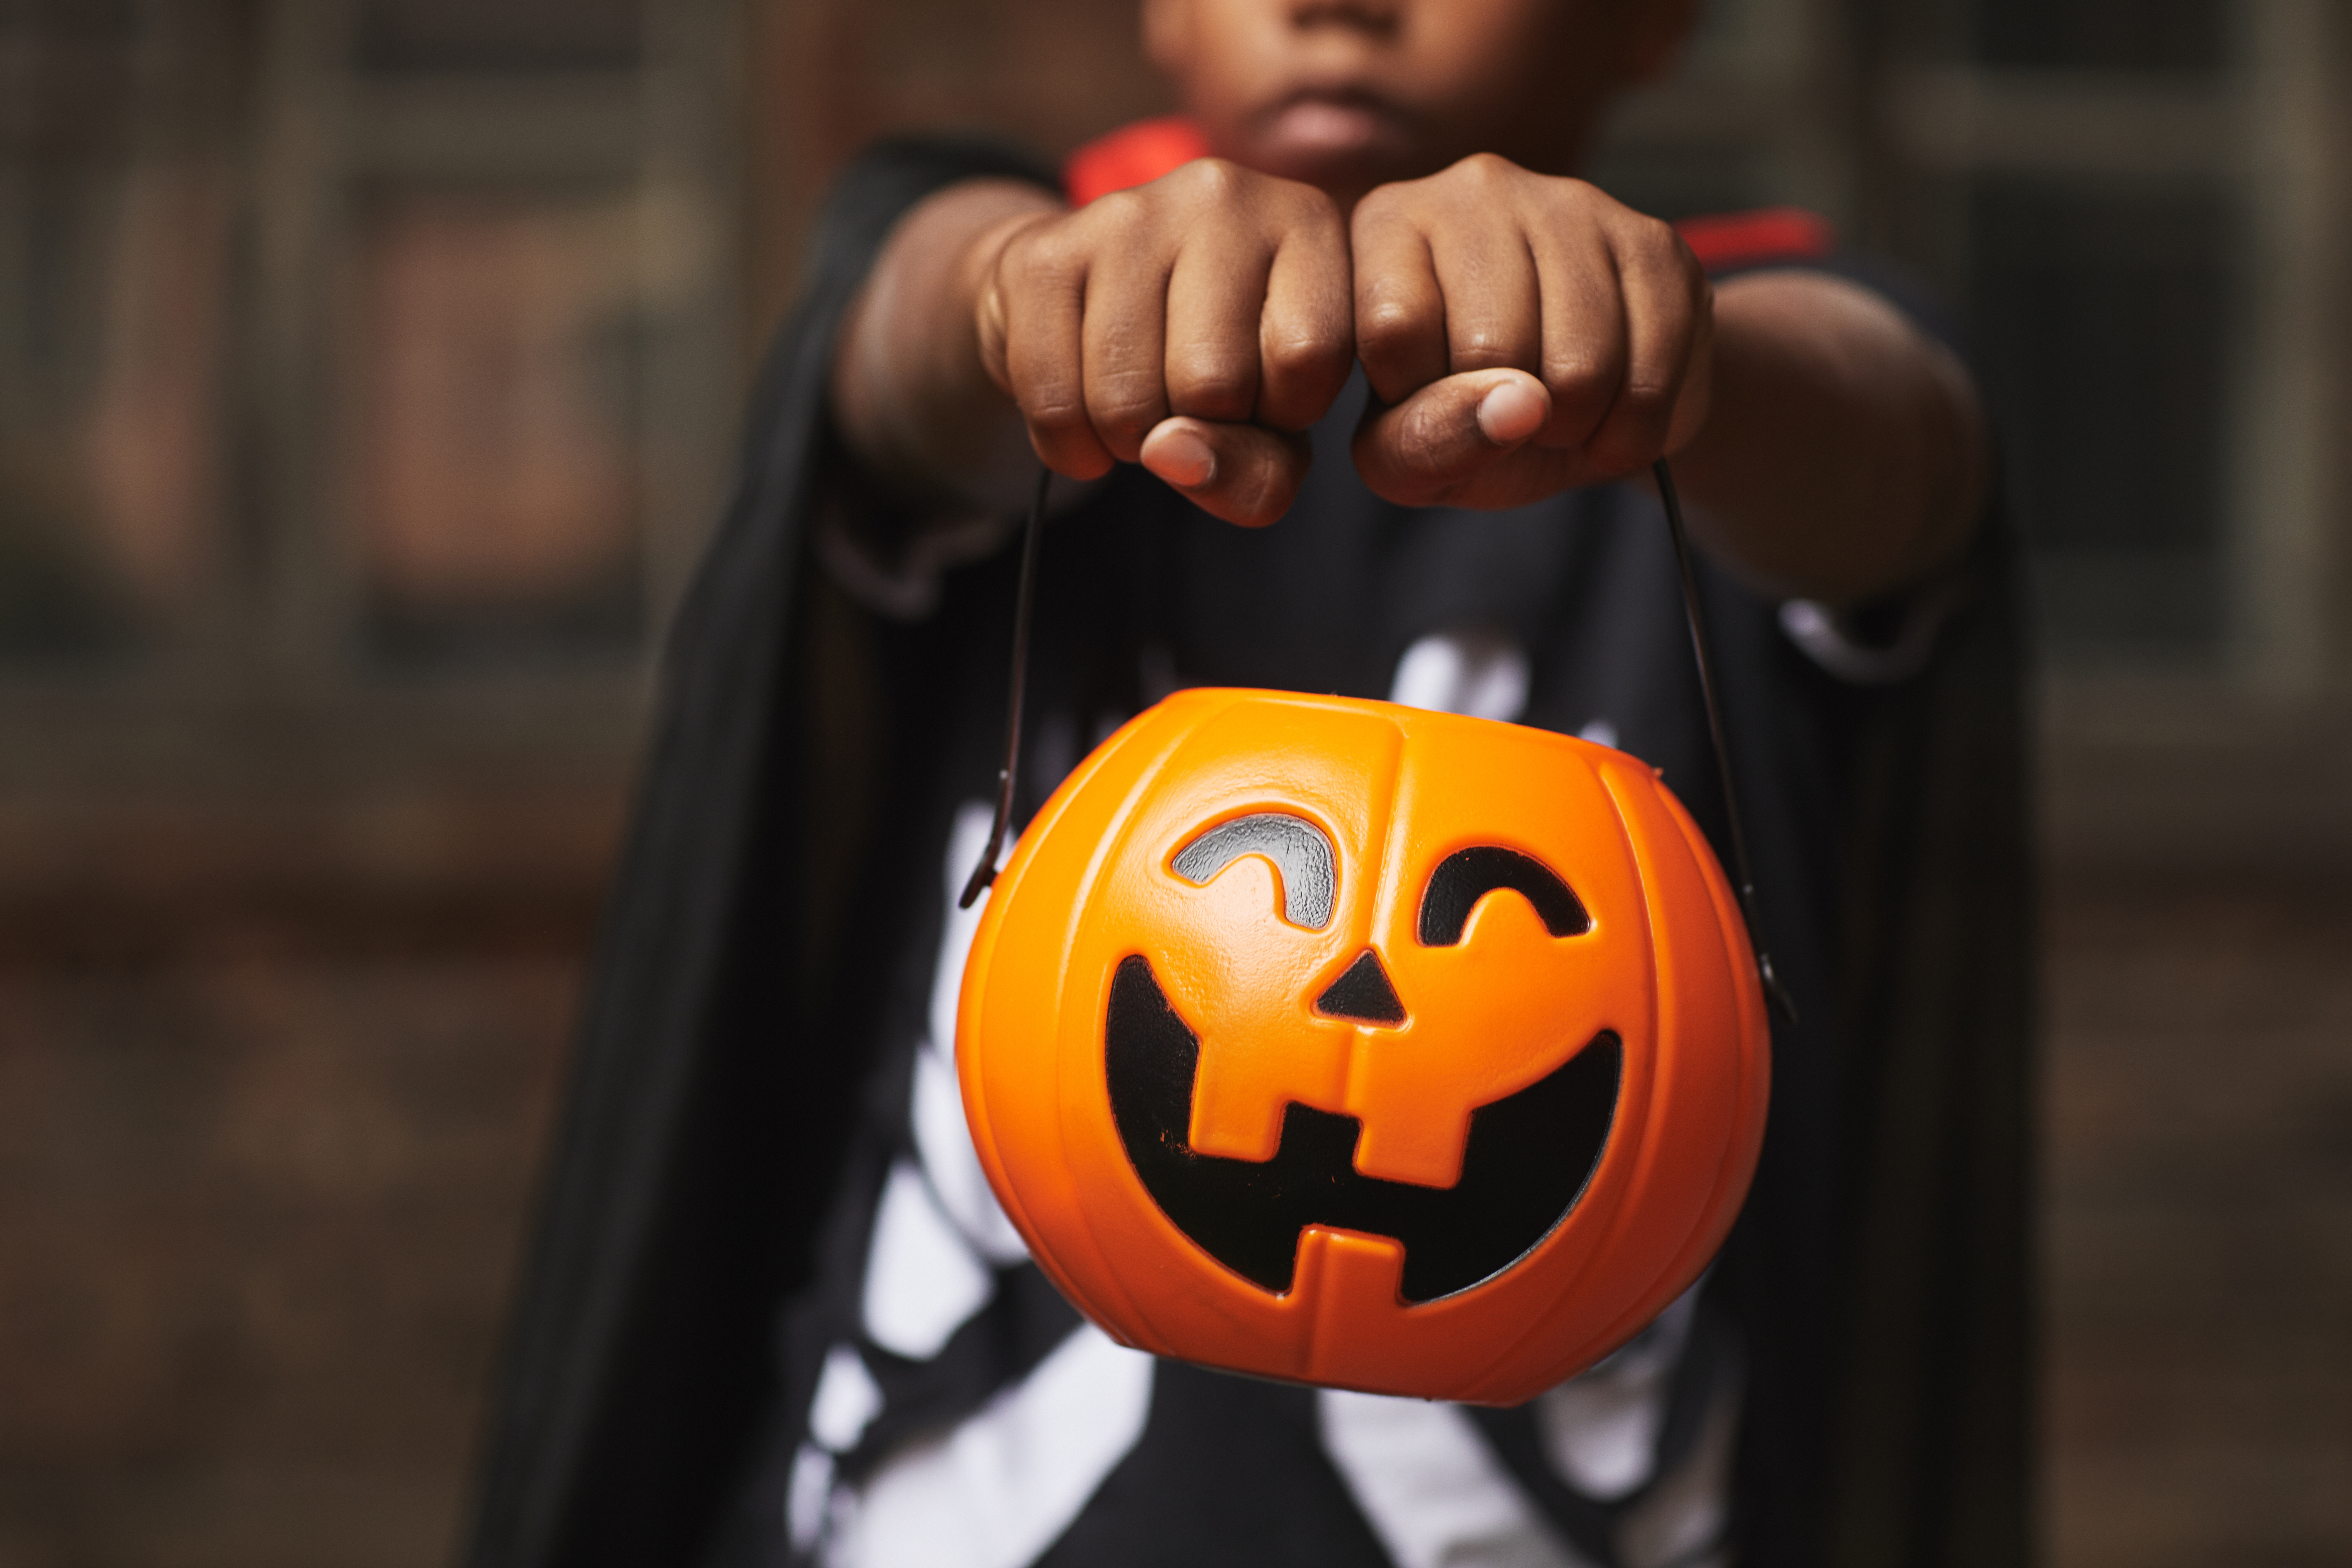 Unrecognizable boy wearing modern Halloween costume demonstrating plastic Jack O' Lantern basket for candies while trick-or-treating